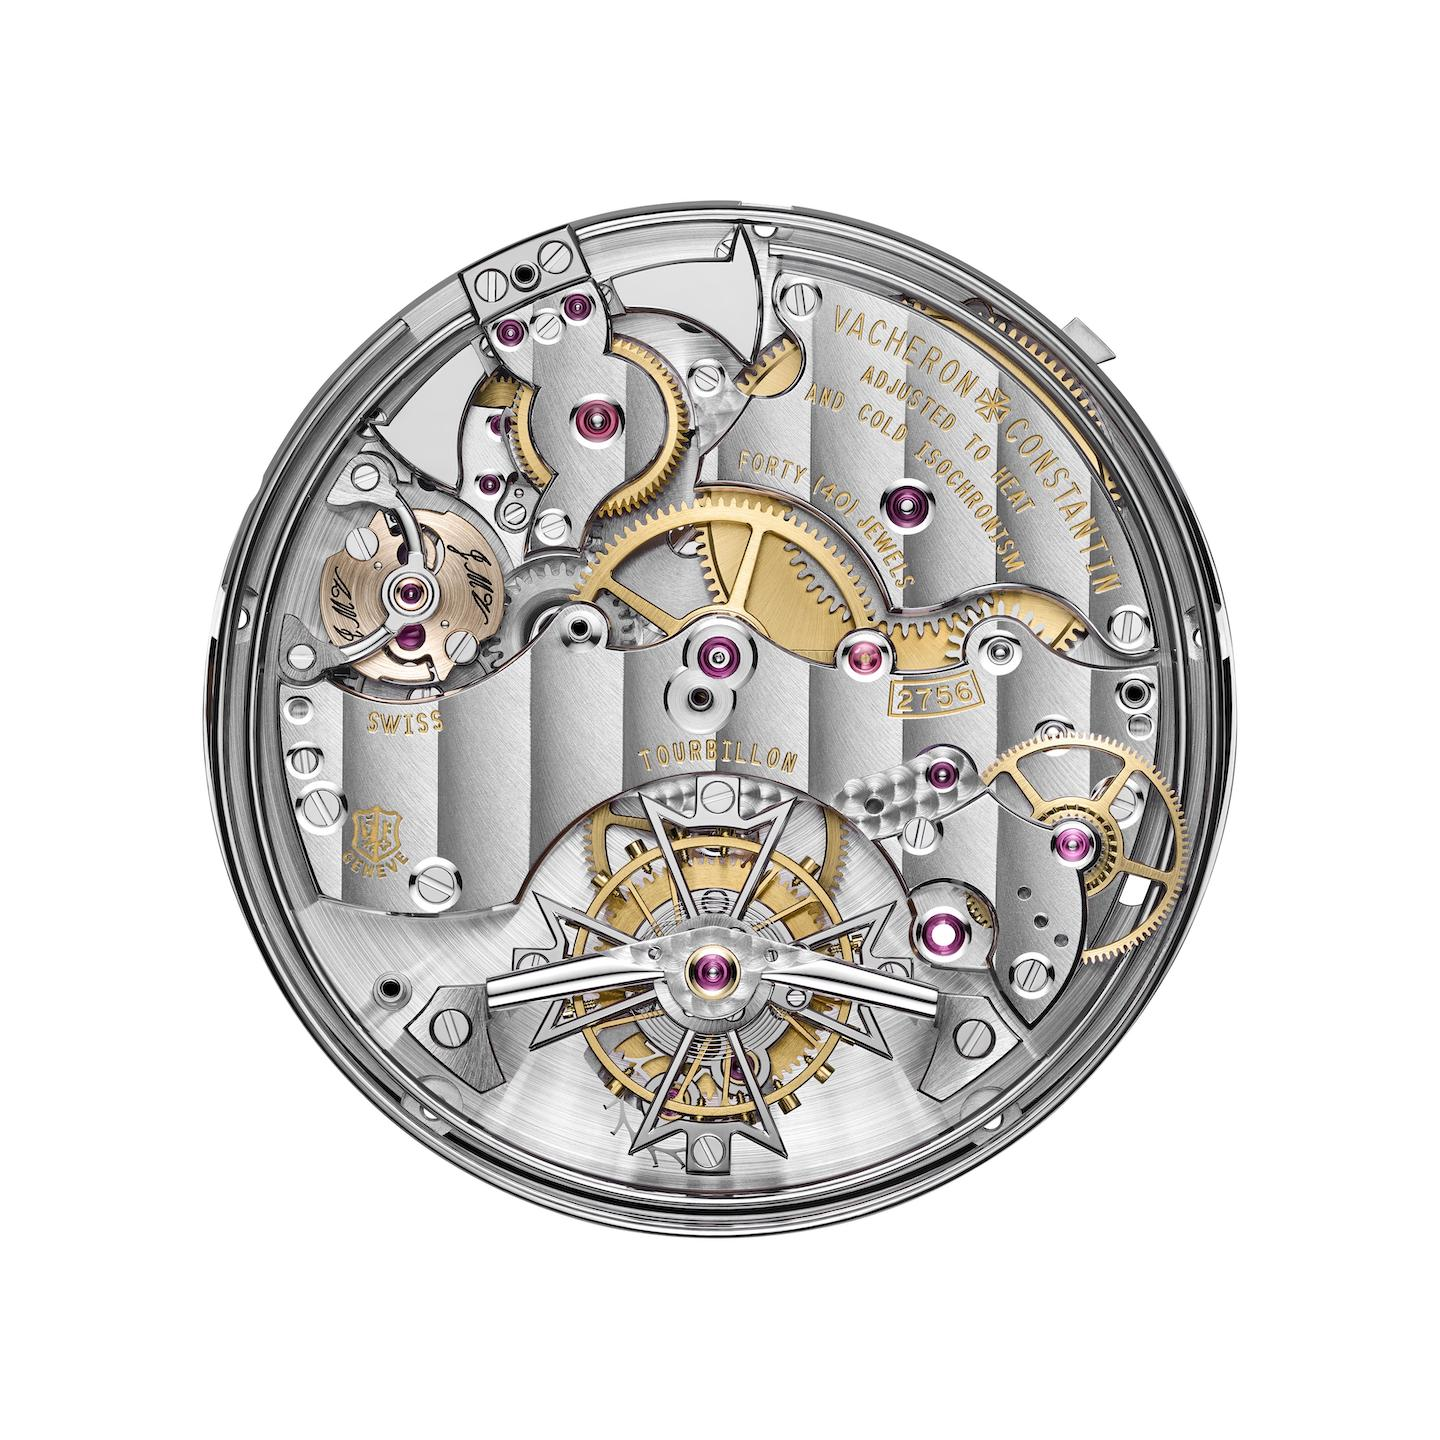 Vacheron Constantin Grand Complication Split-Seconds Tempo La Musique du Temps